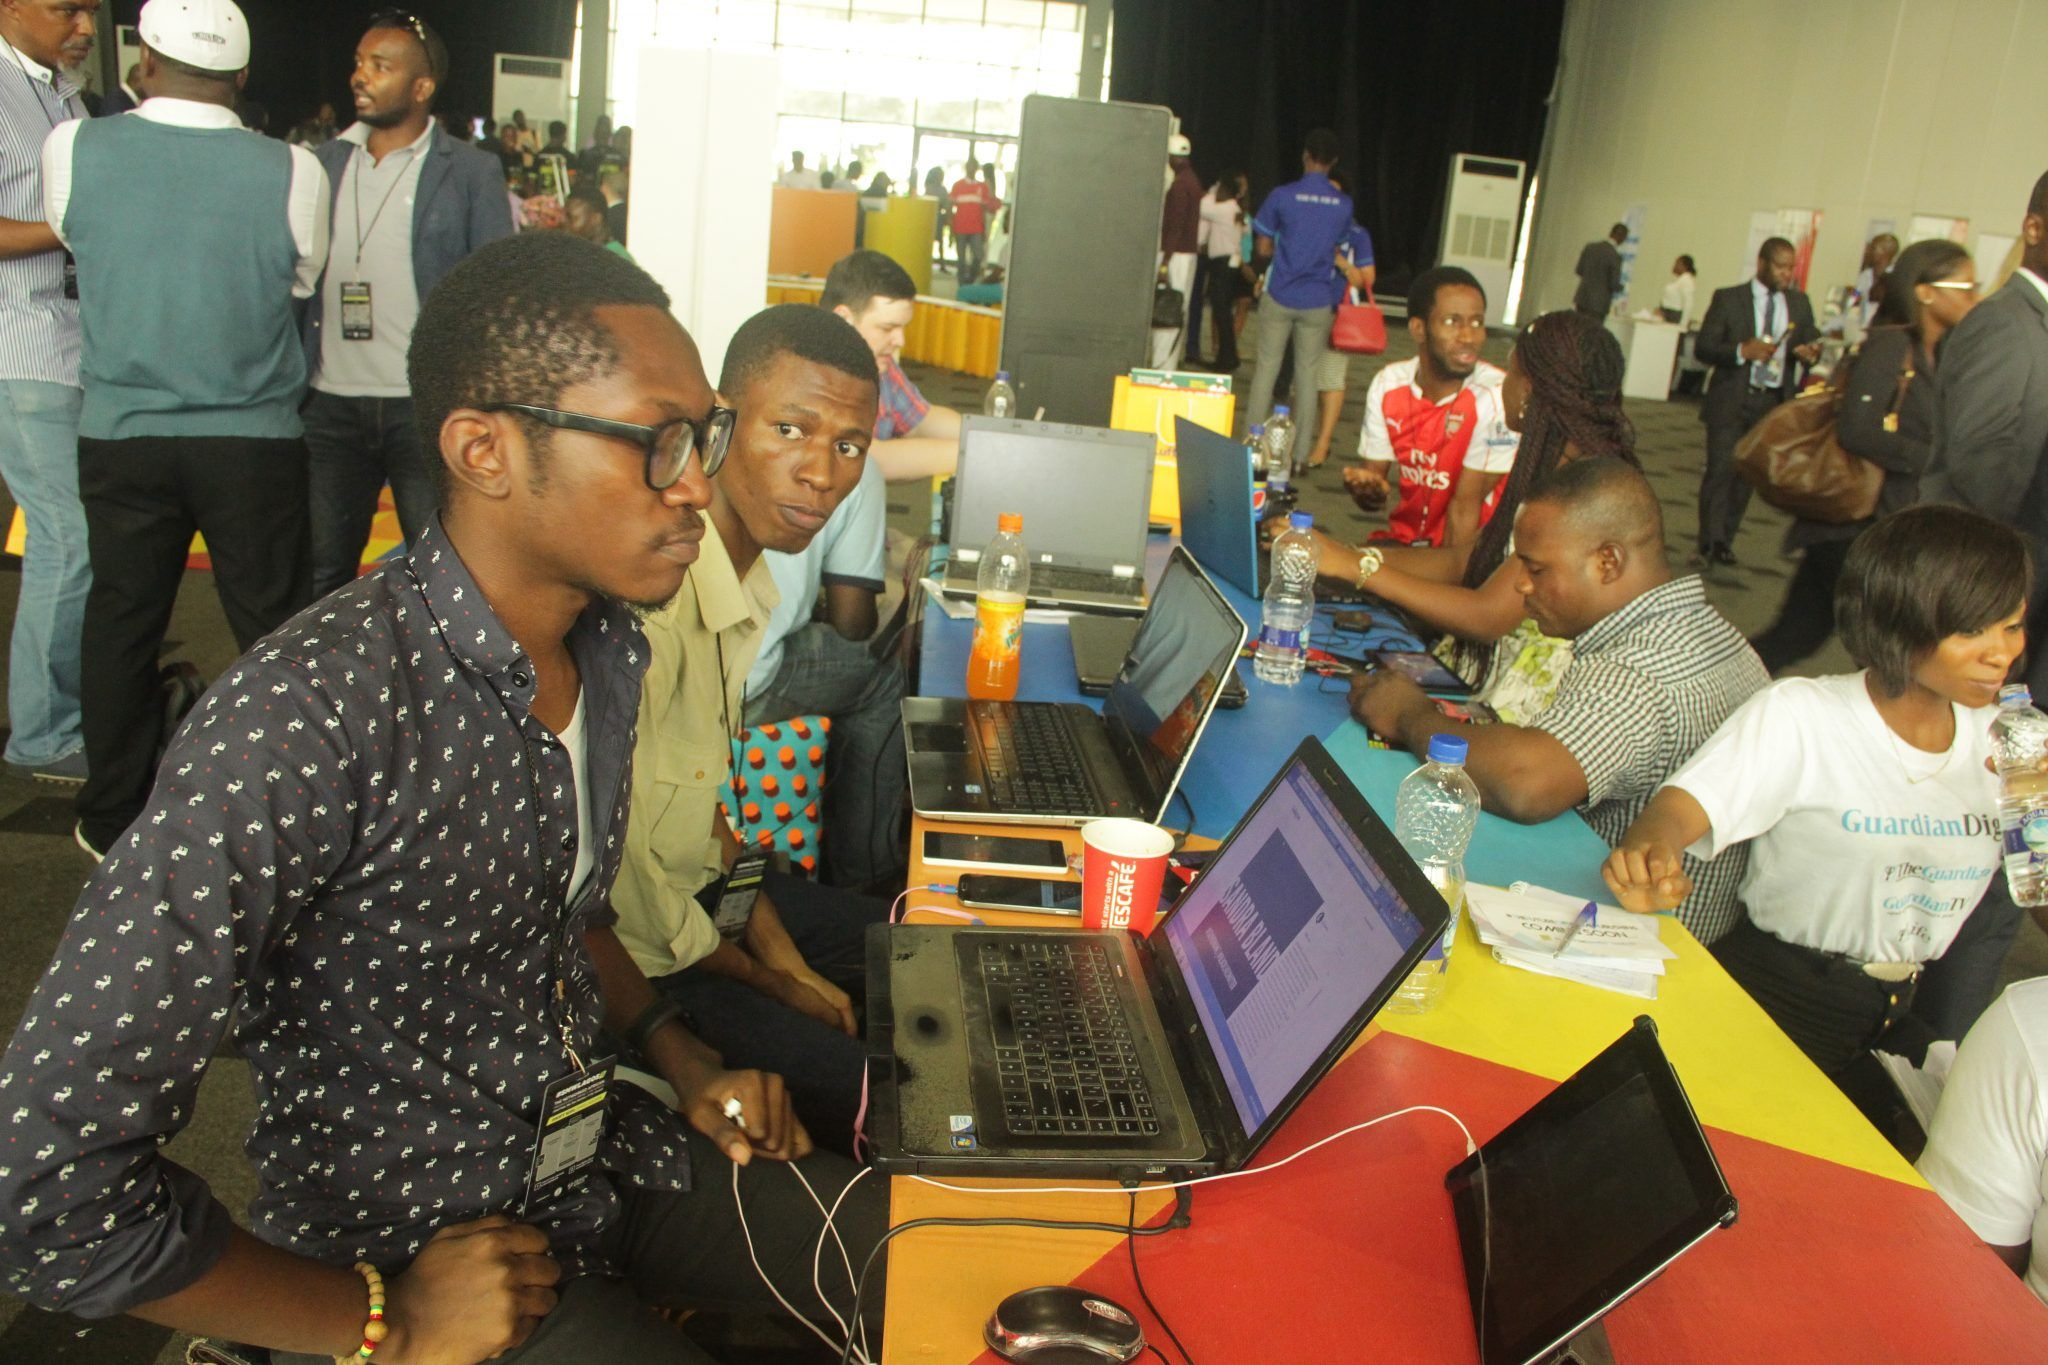 A cross section of activities at 2016 Social Media Week Lagos